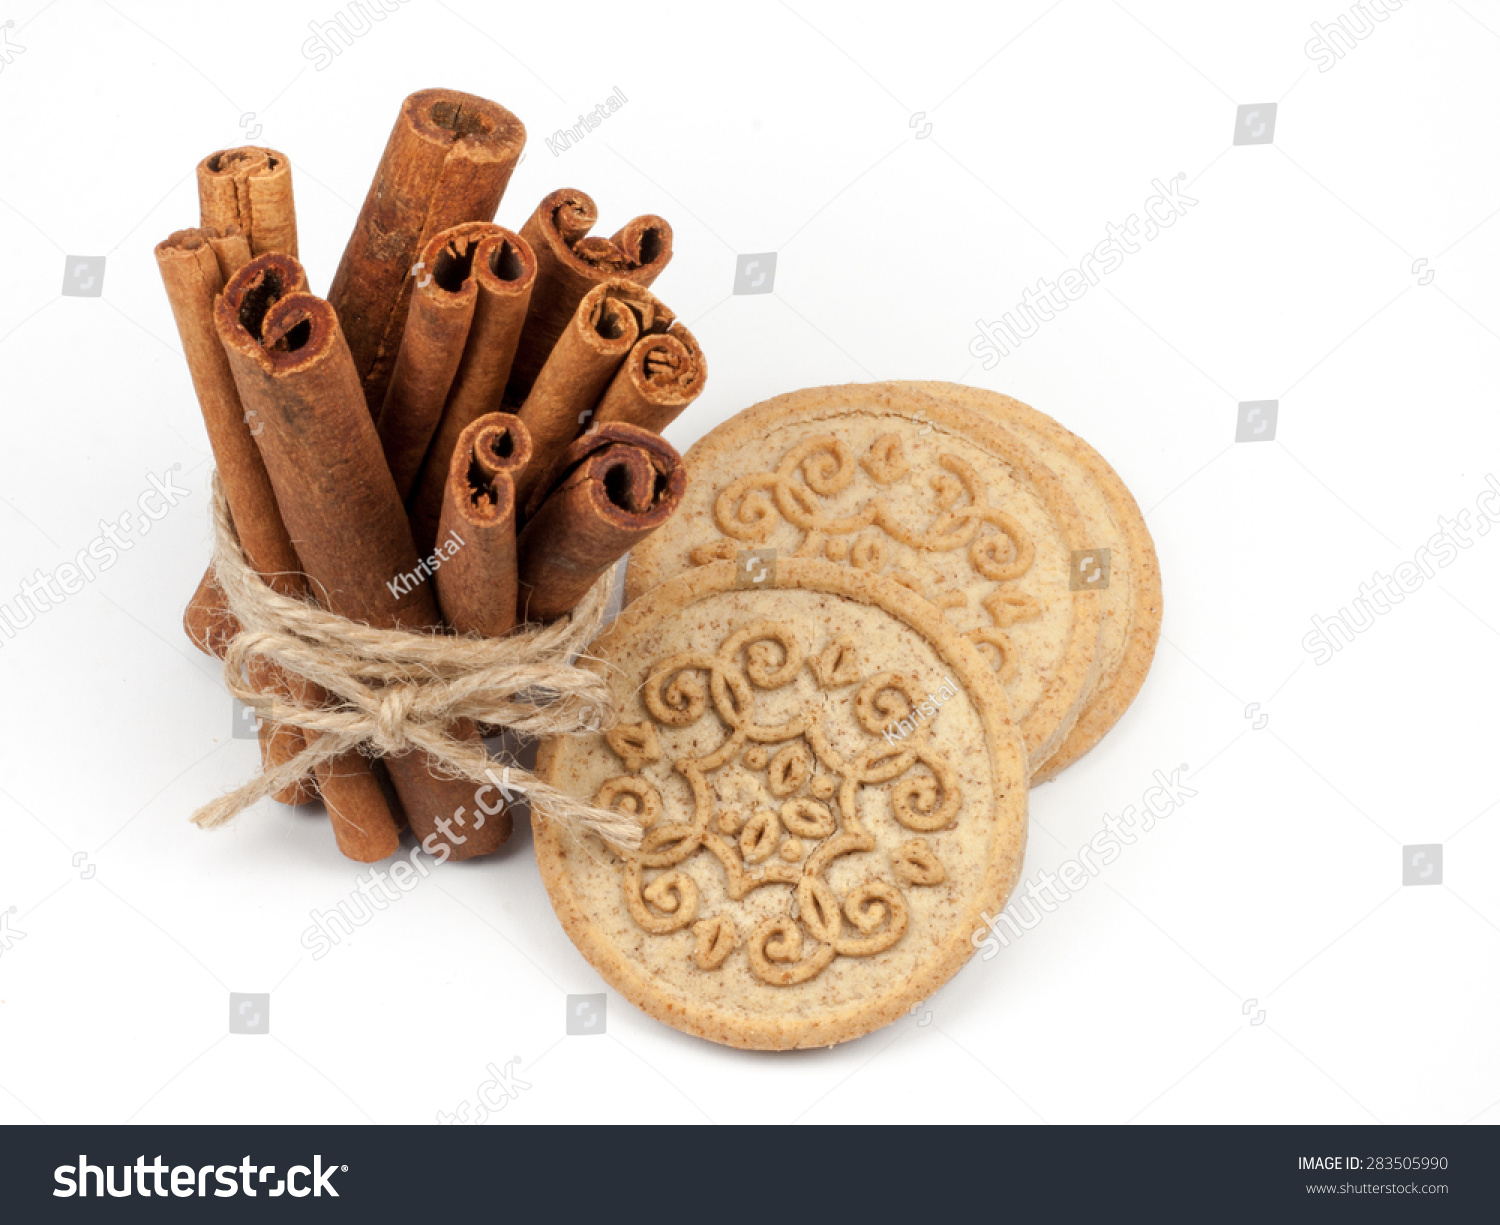 how to cook with cinnamon sticks